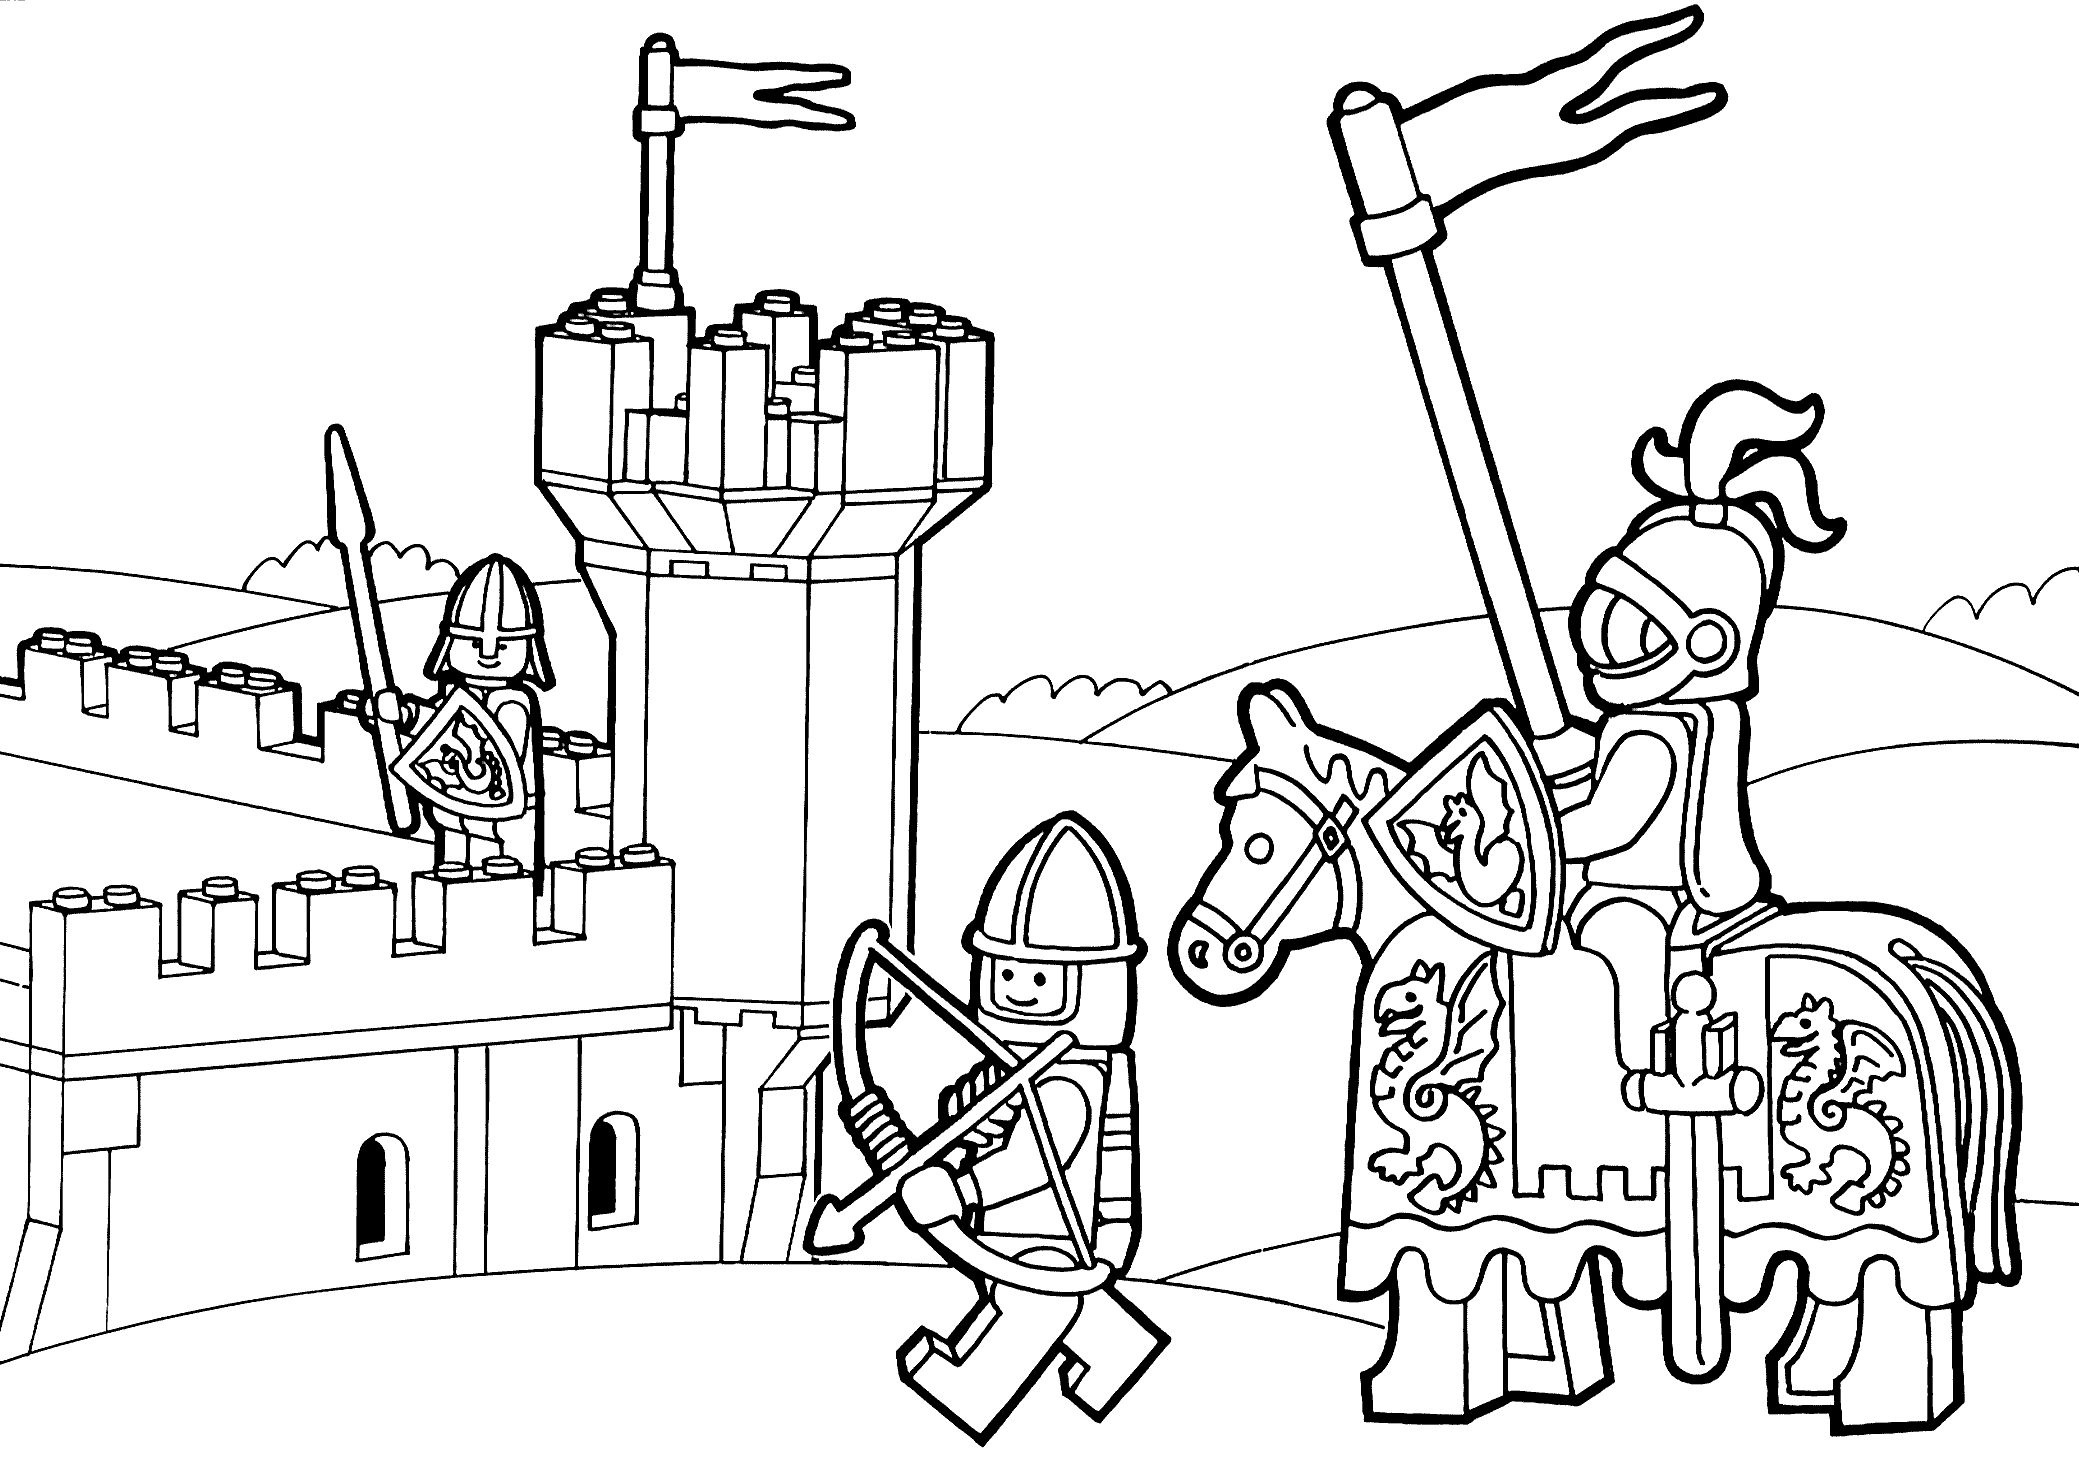 lego colouring in pictures free printable lego coloring pages for kids in pictures colouring lego